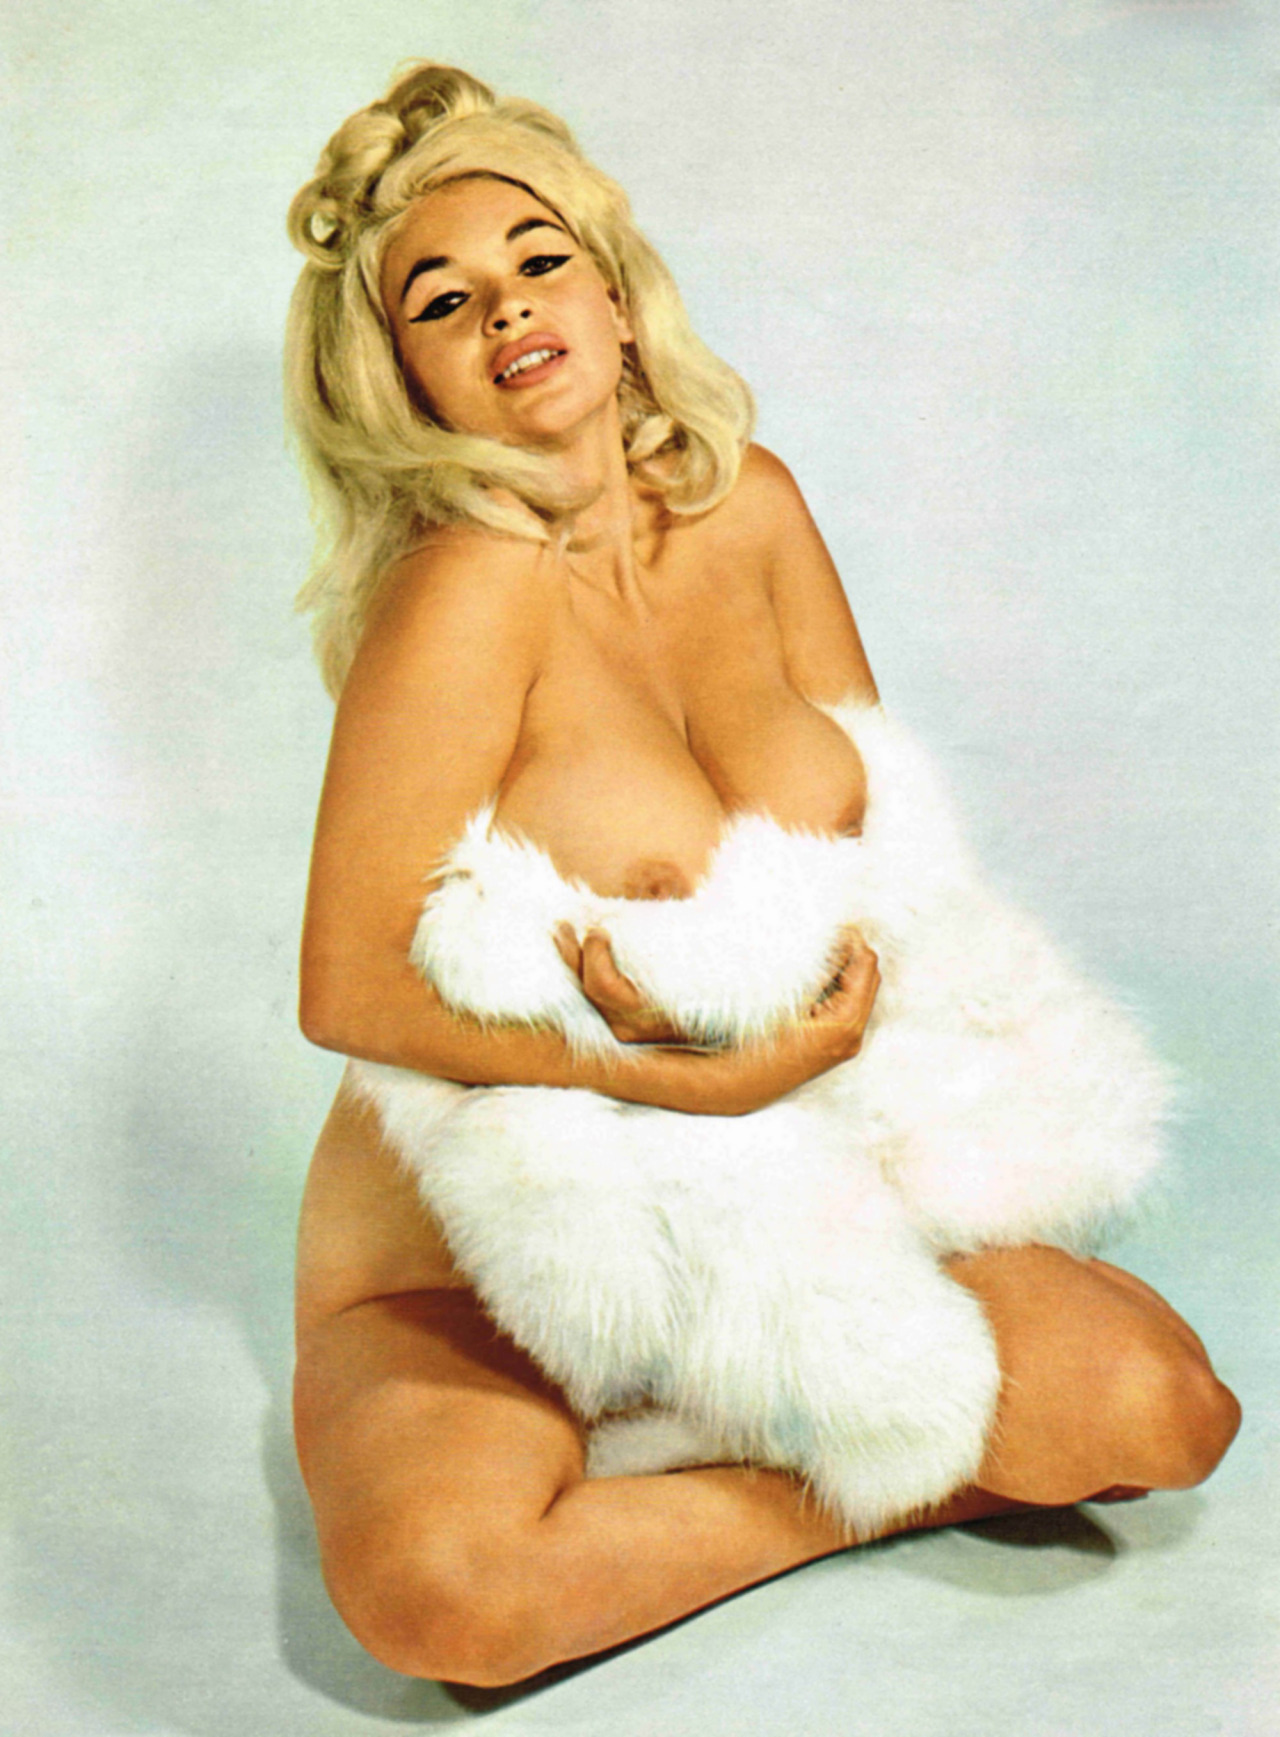 Jayne Mansfield Nude Holding Her Boobs With White Fur